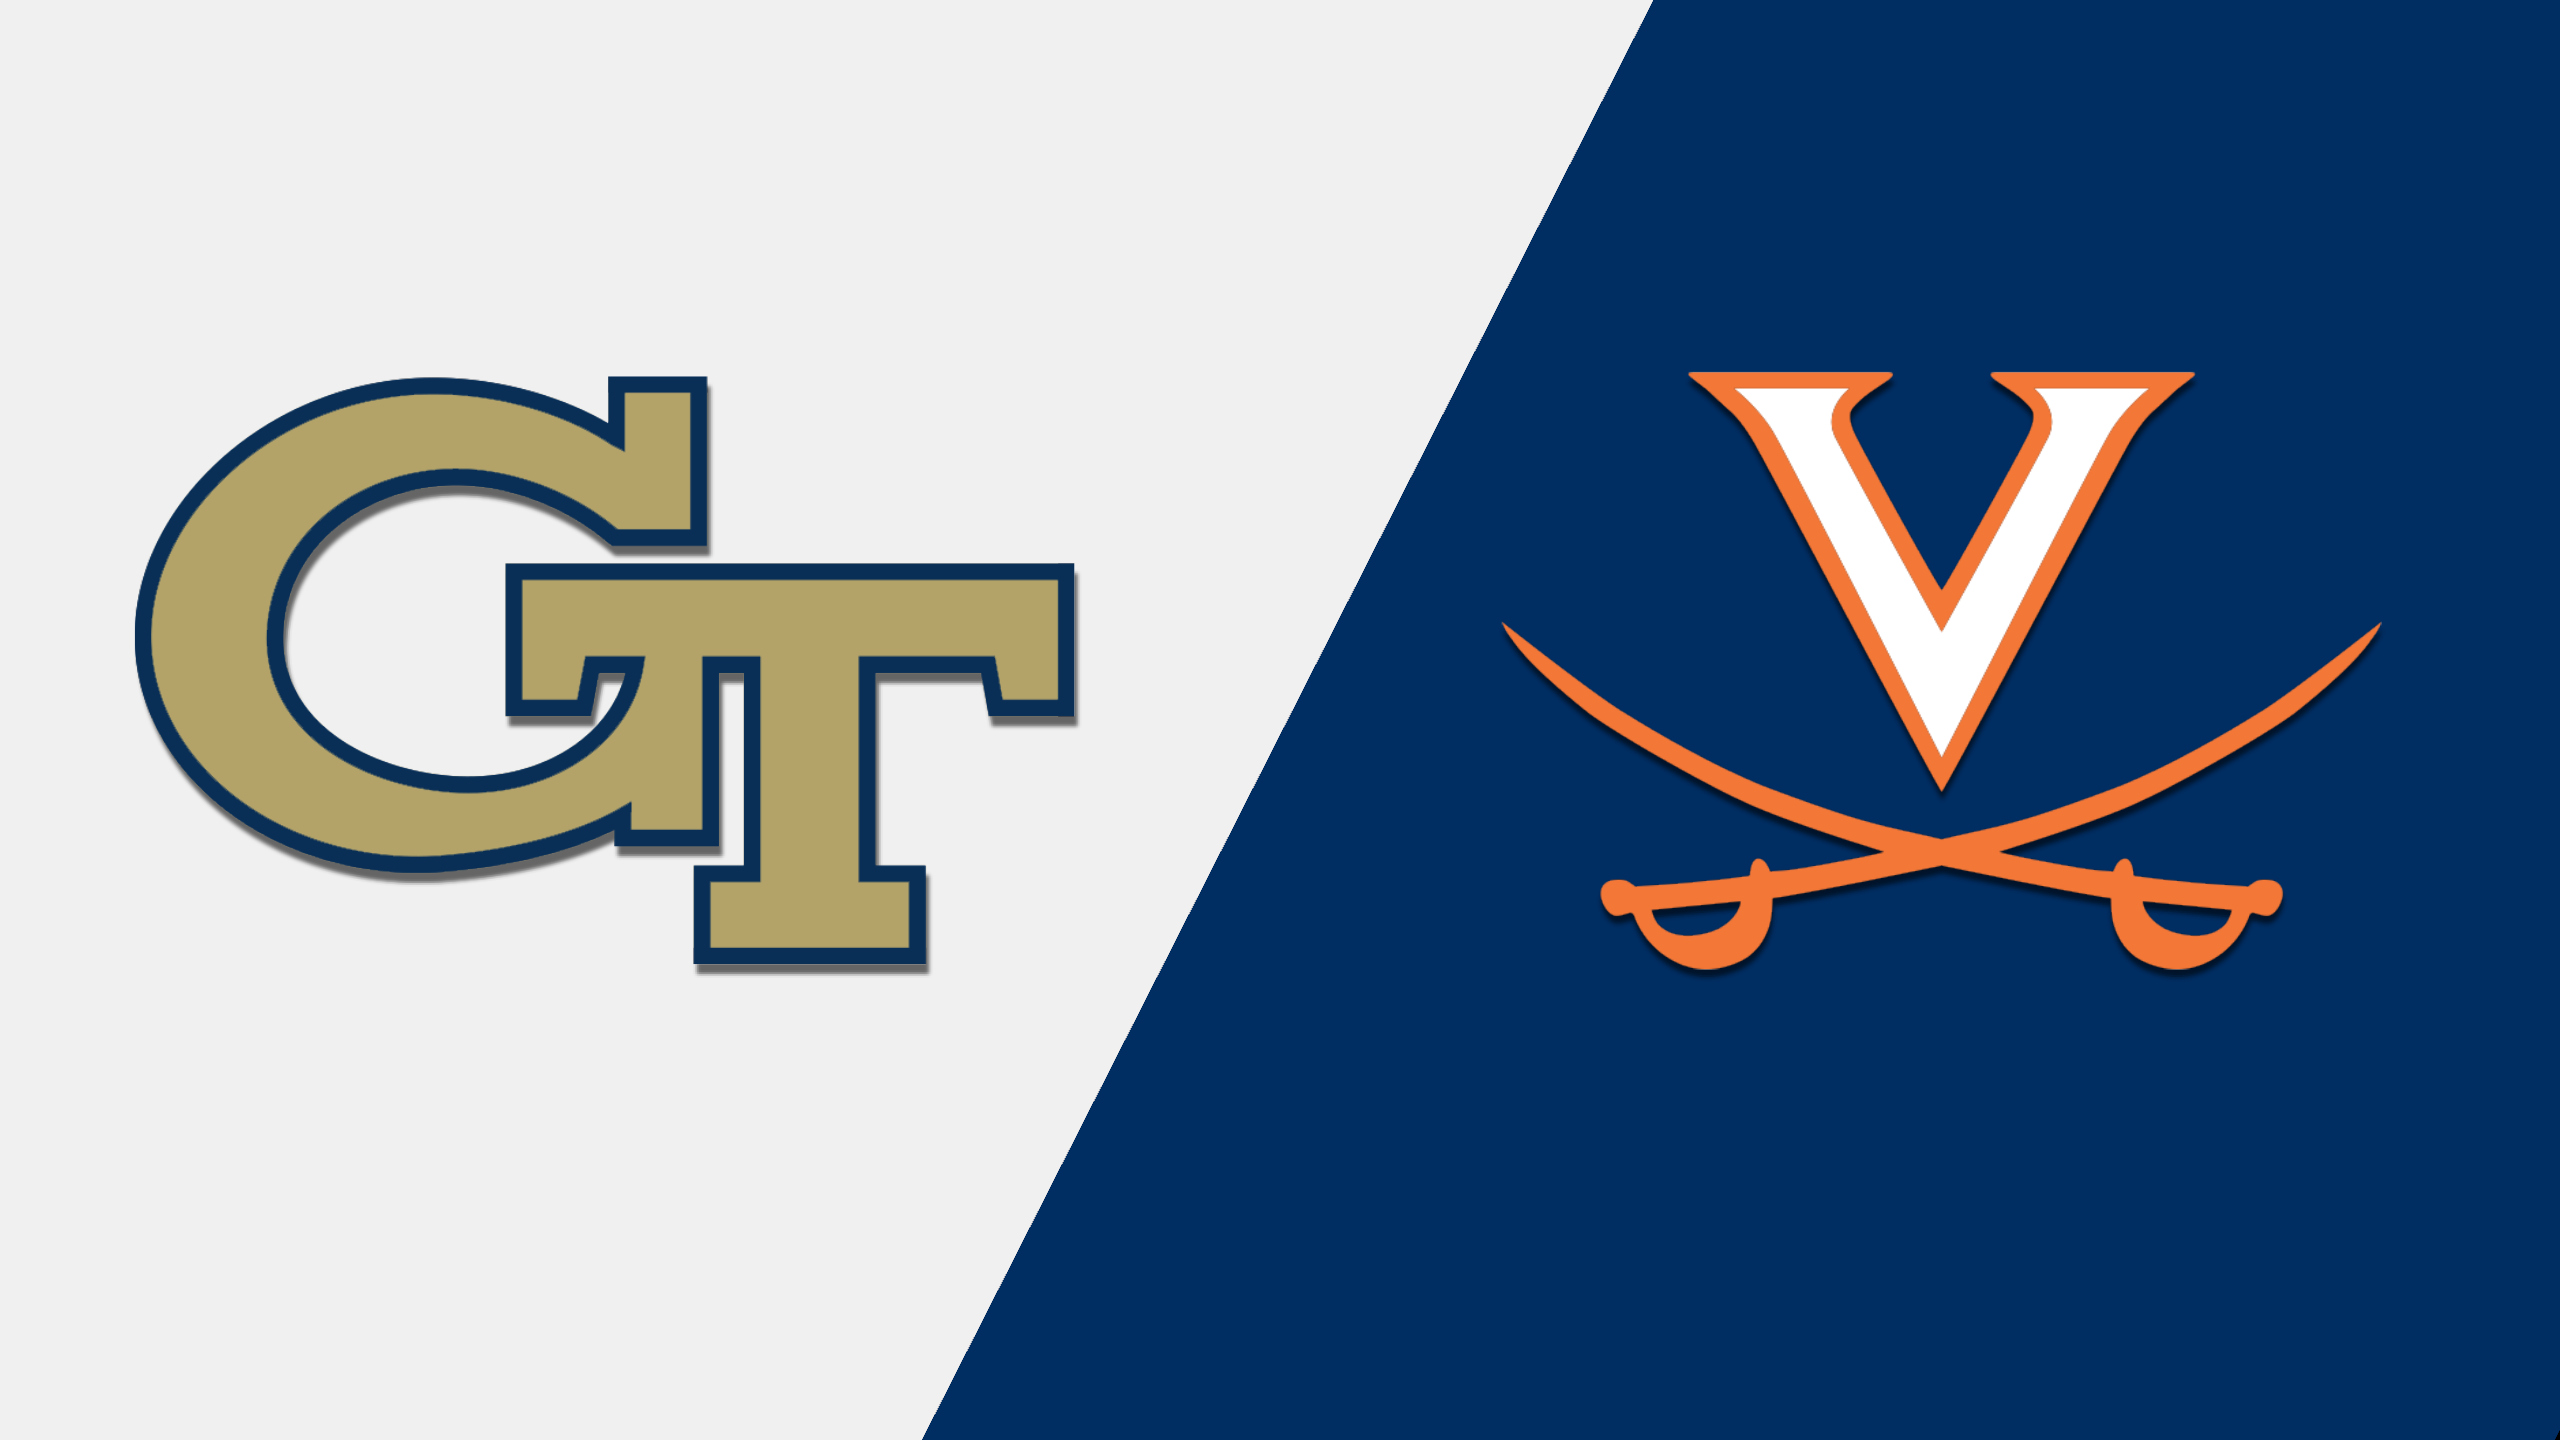 Georgia Tech vs. Virginia (W Basketball)